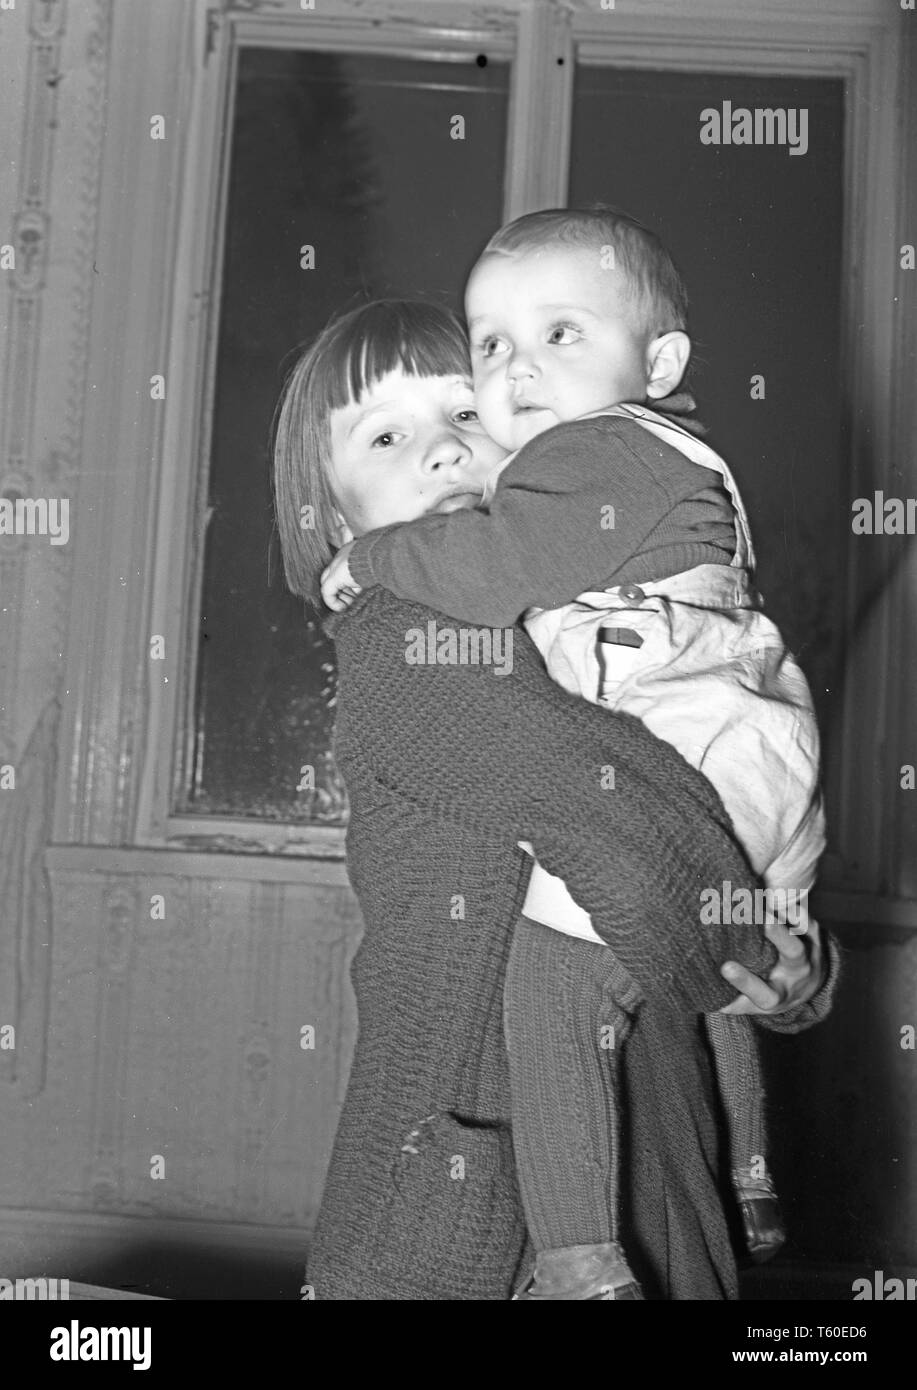 The Winter War. A military conflict between the Soviet union and Finland. It began with a Soviet invasion on november 1939 when Soviet infantery crossed the border on the Karelian Isthmus. Here at Karelian Isthmus Finland  Finnish civilians evacuated from the frontline. A young girl holding her little brother in her arms. December 1939. Photo Kristoffersson ref 98-20 - Stock Image